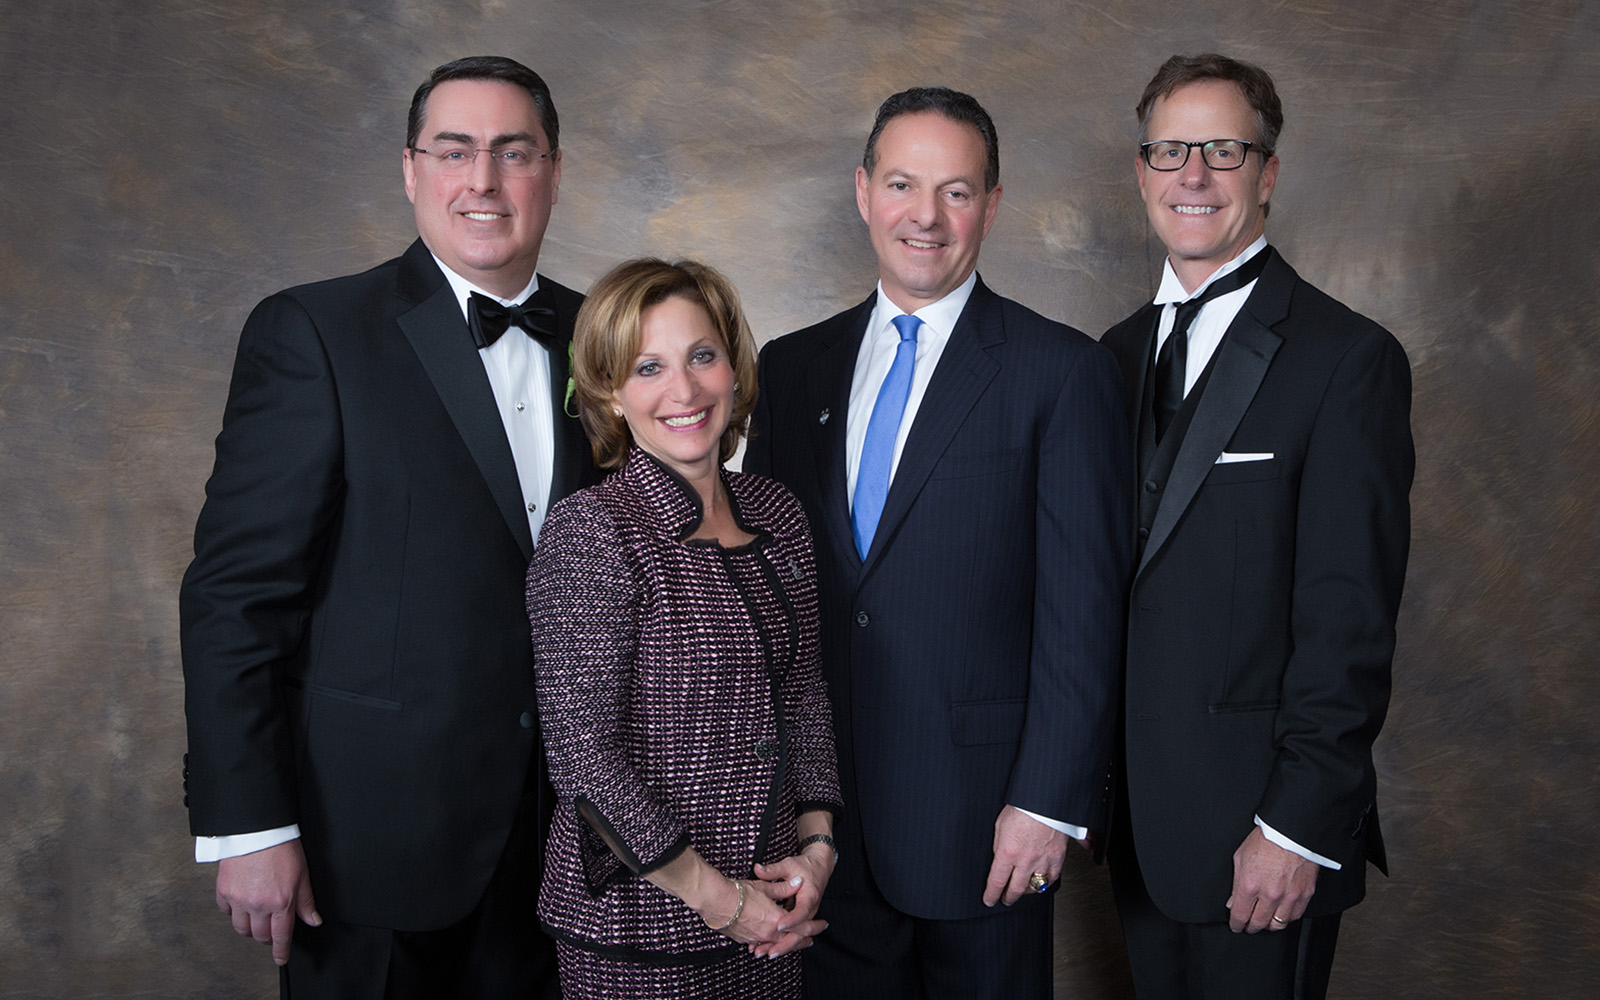 2017 Inductees to the UConn School of Business Hall of Fame: George Aylward '88, Shari G. Cantor '81, John P. Malfettone '77, and John R. Fodor '85 (Thomas Hurlbut Photography)